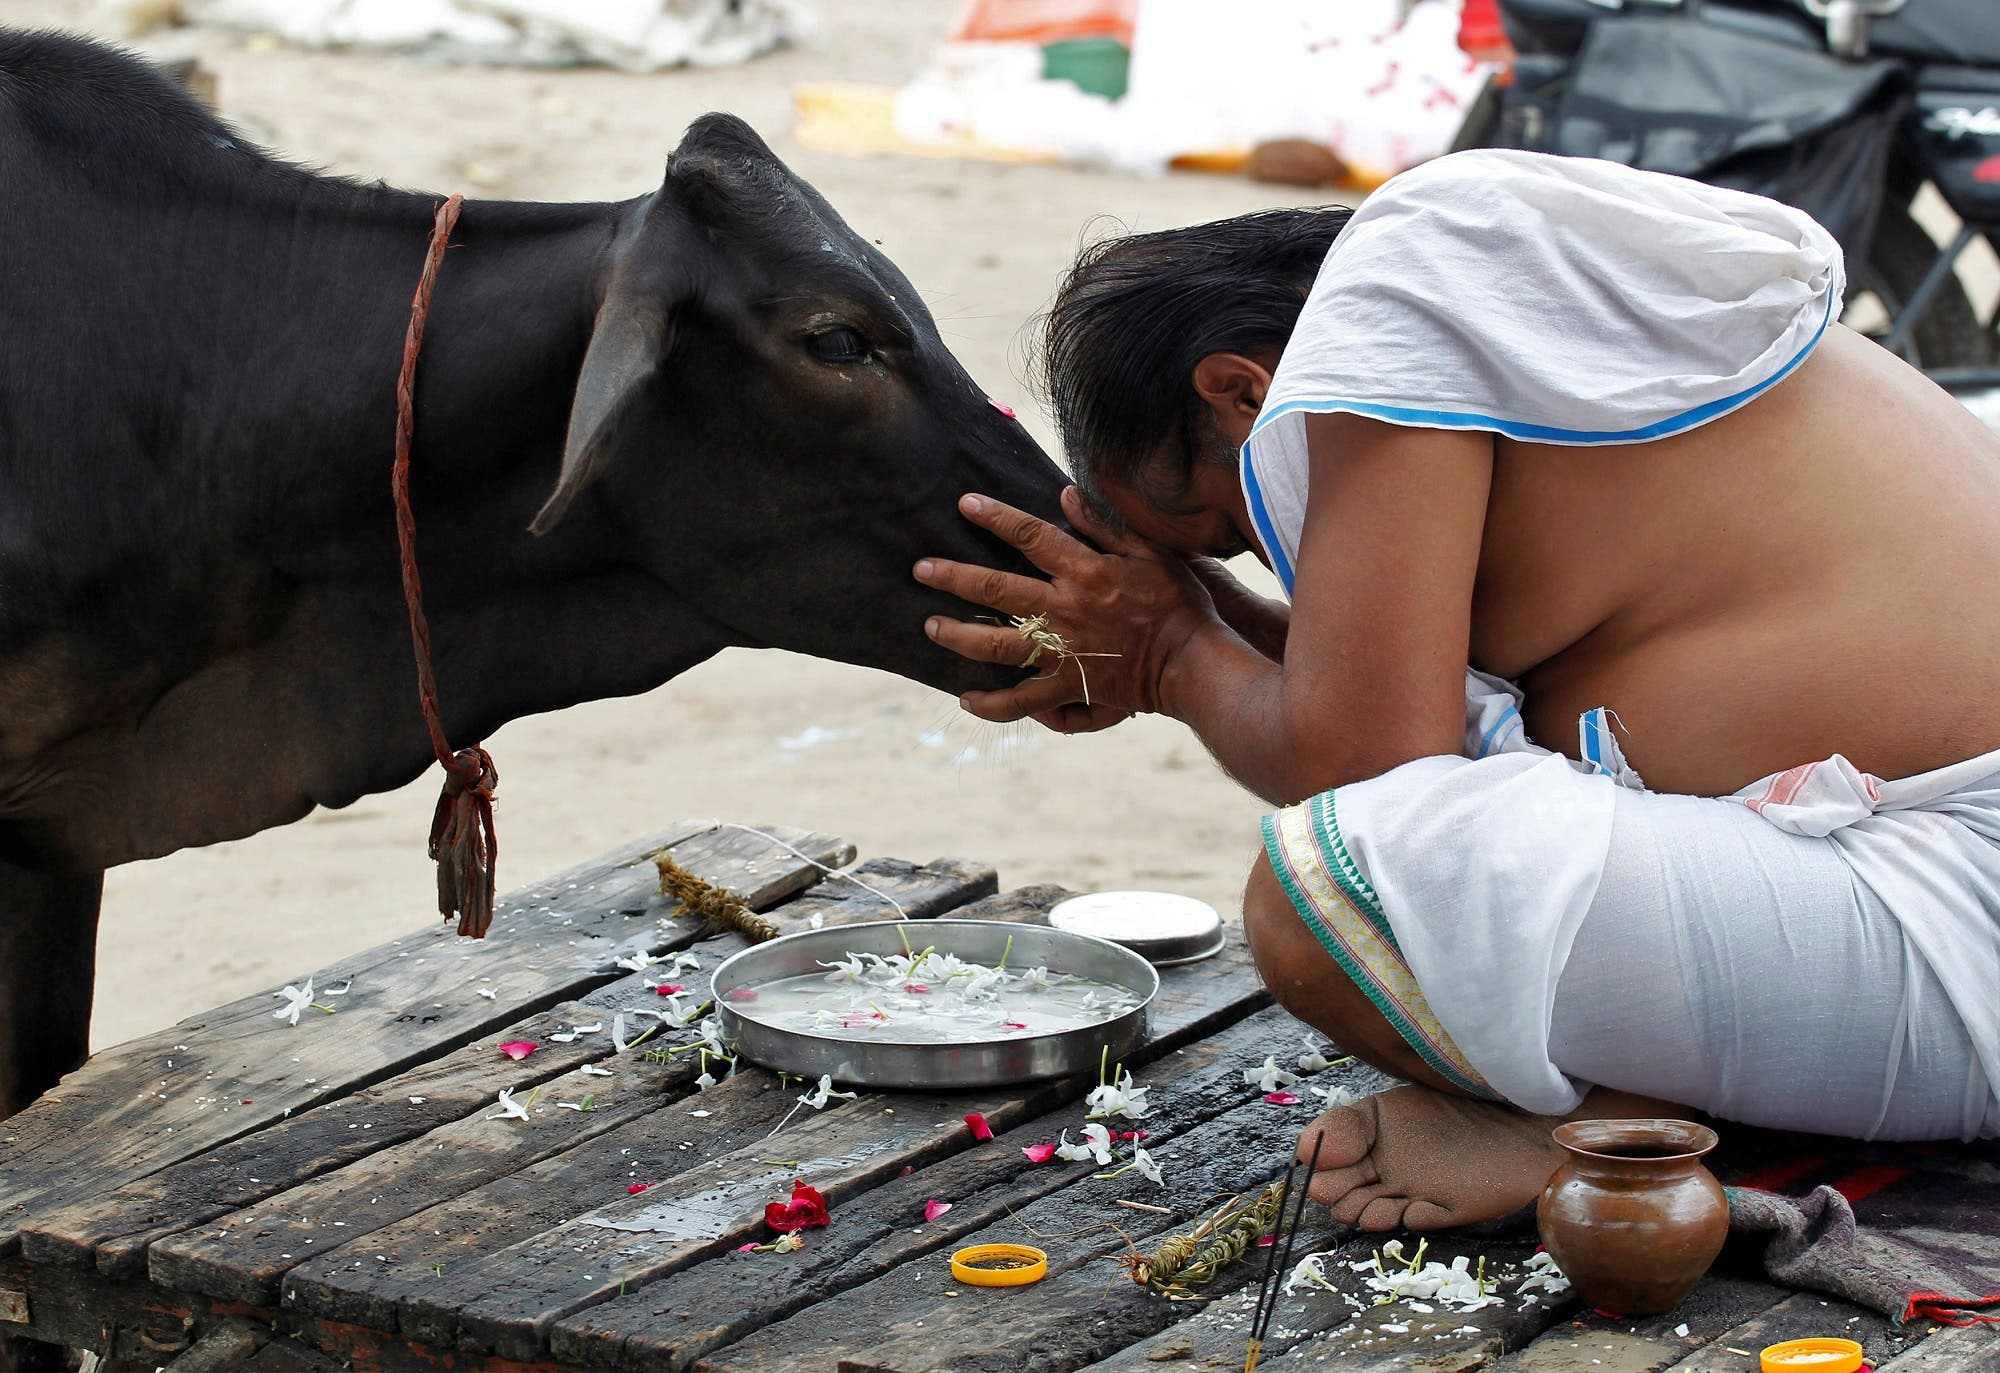 A Hindu devotee offers prayers to a cow in Allahabad, India, September 28, 2016. (Reuters)